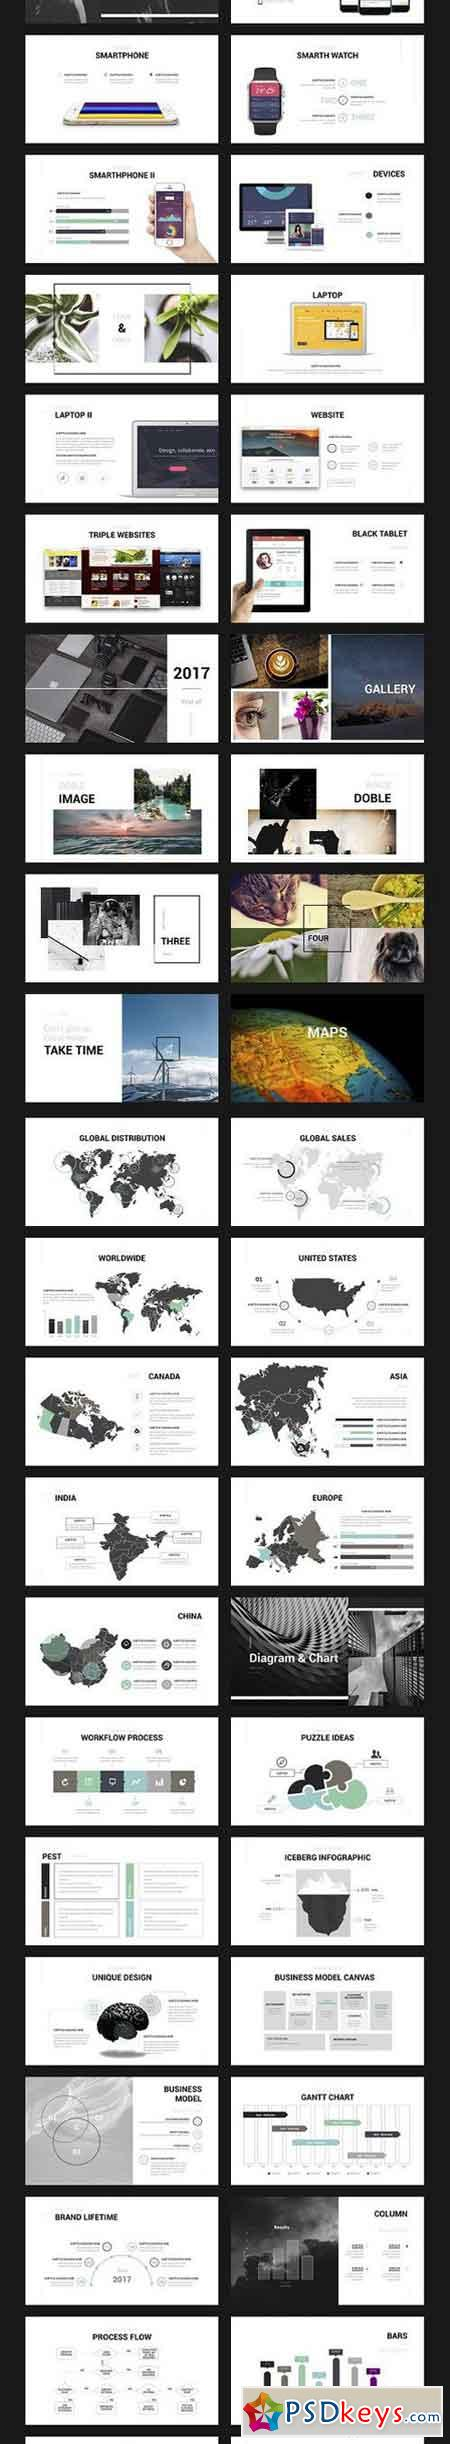 Century Powerpoint Template 1302477